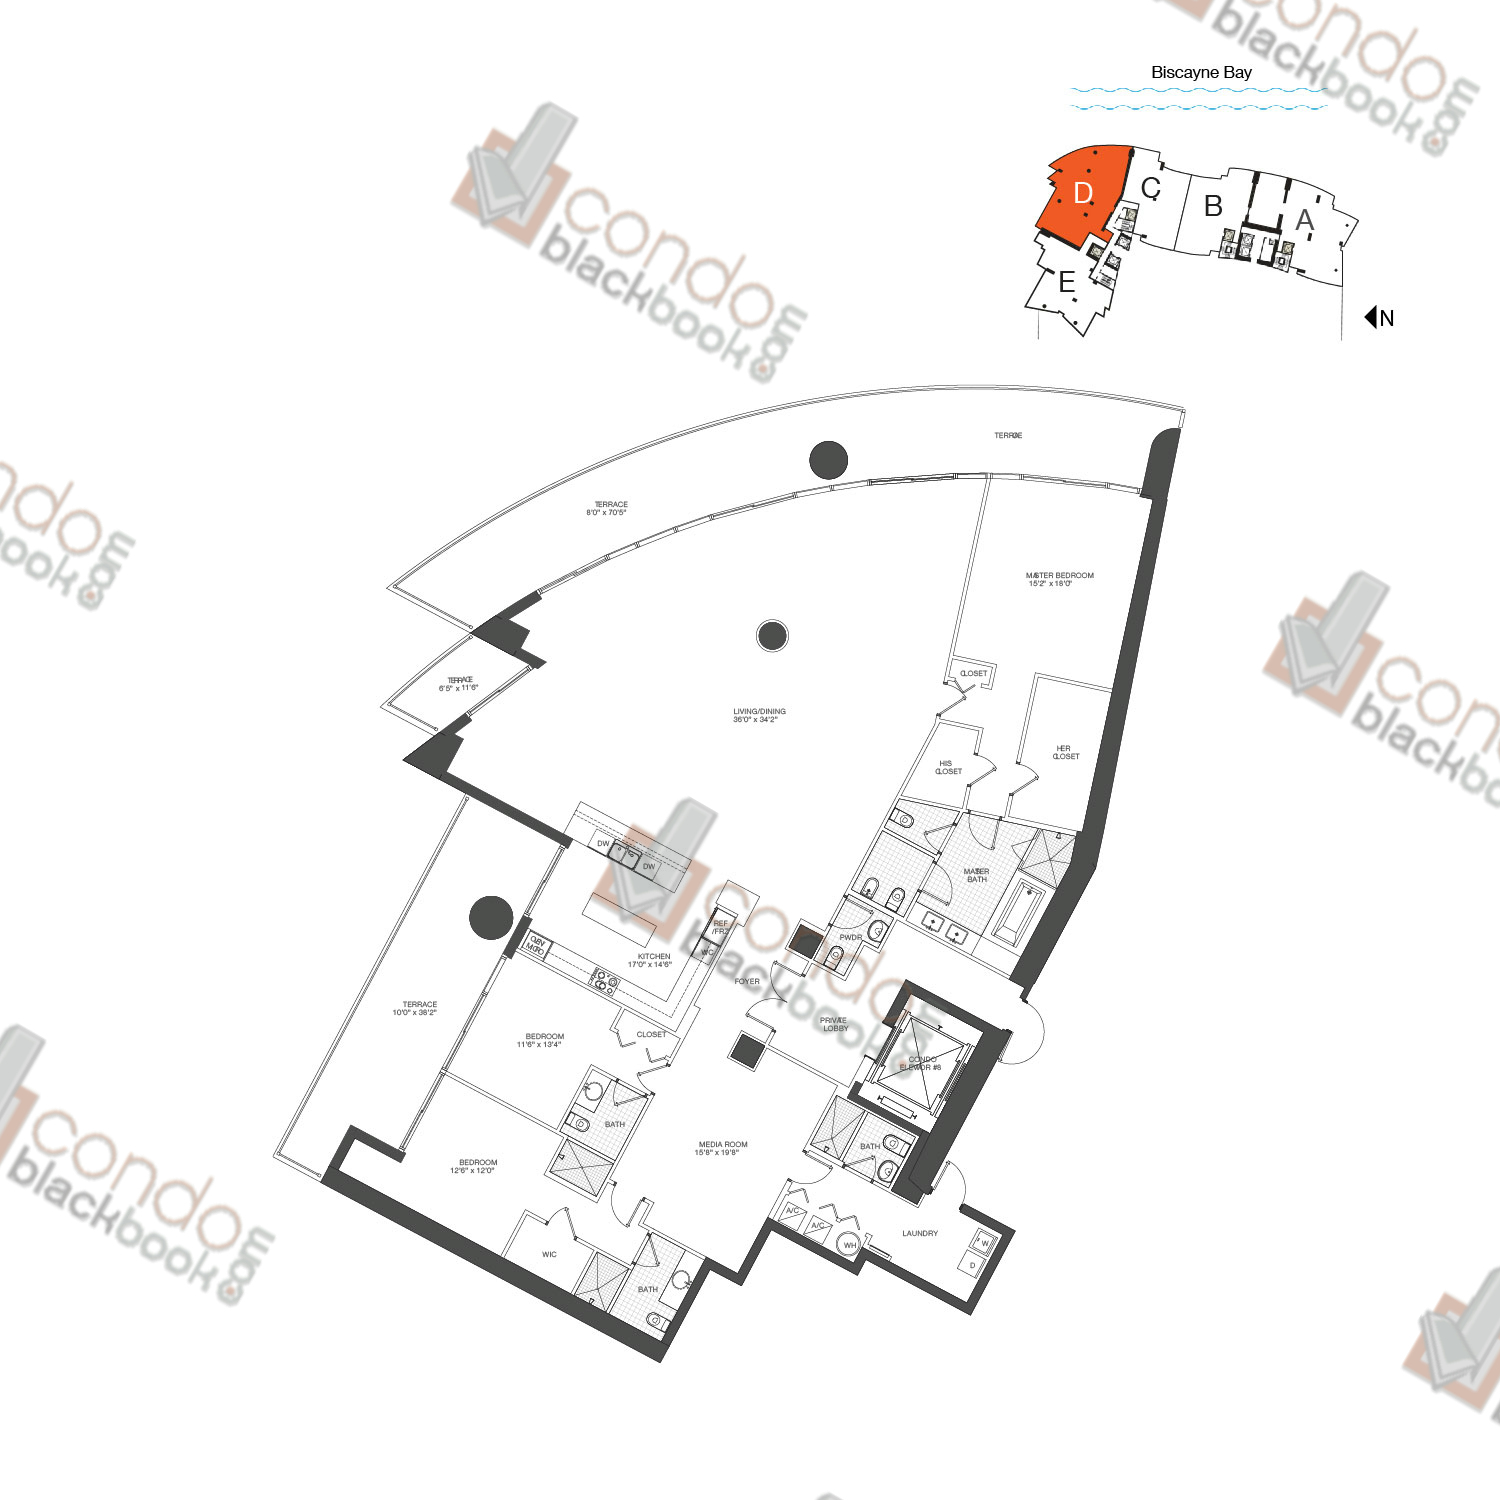 Floor plan for 900 Biscayne Bay Downtown Miami Miami, model PH D, line 07, 3/4.5 bedrooms, 3,535 sq ft